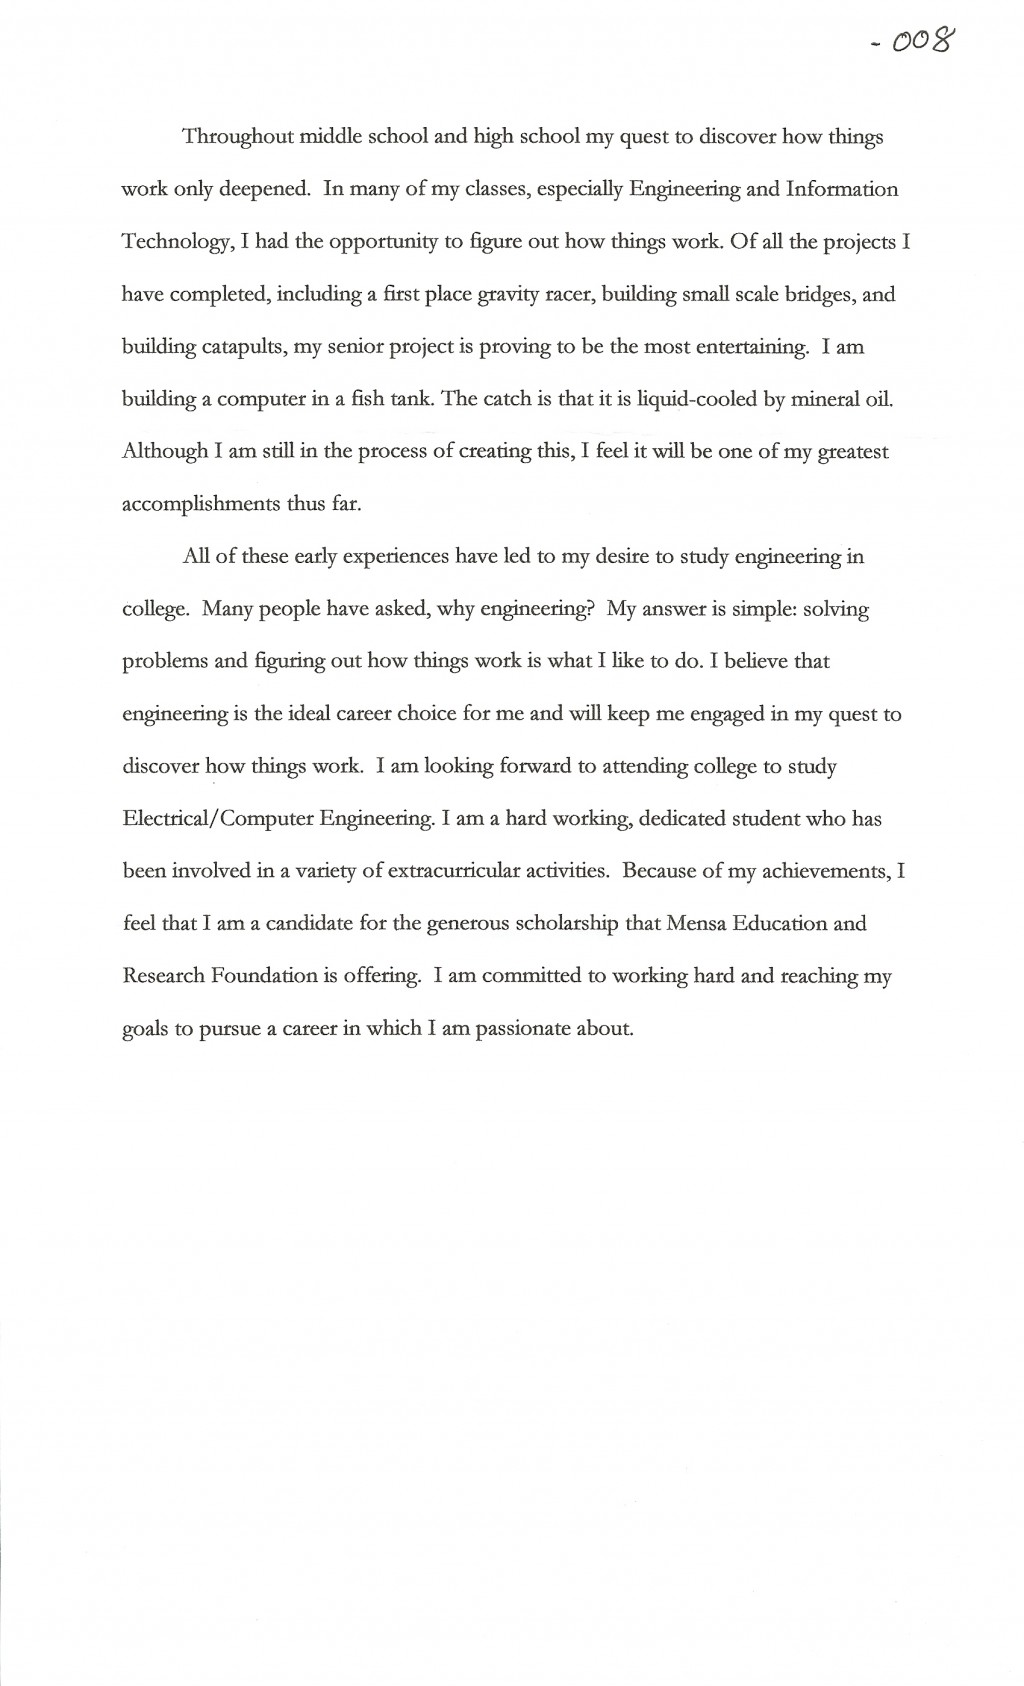 014 Joshua Cate Essay Example Staggering Studymode Written In Kannada Language A Day Without Water About Social Problem Large